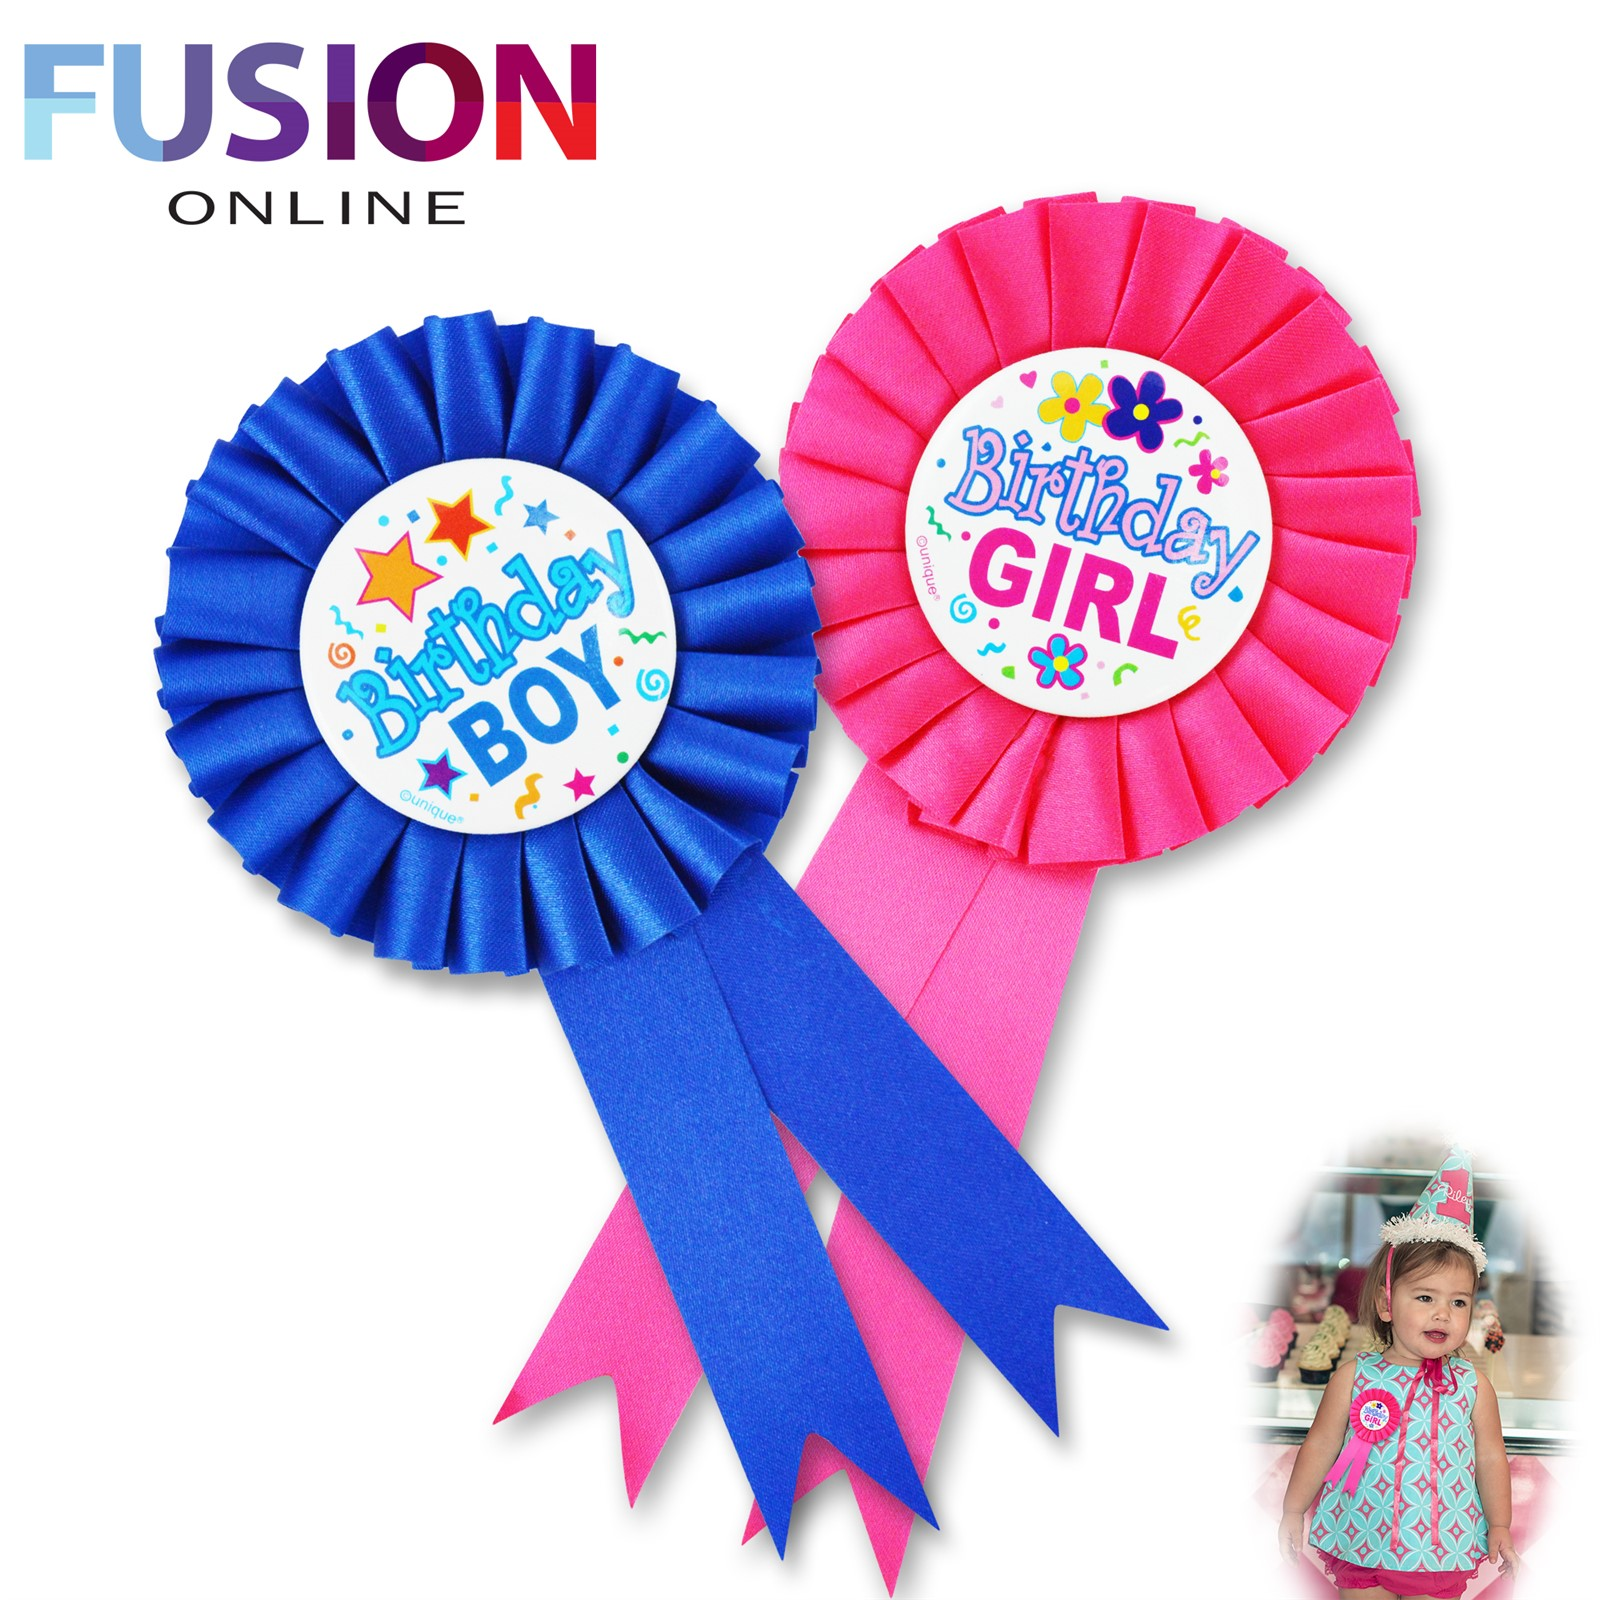 HAPPY BIRTHDAY BOYS BADGE GIRLS BADGE ROSETTE BLUE PINK